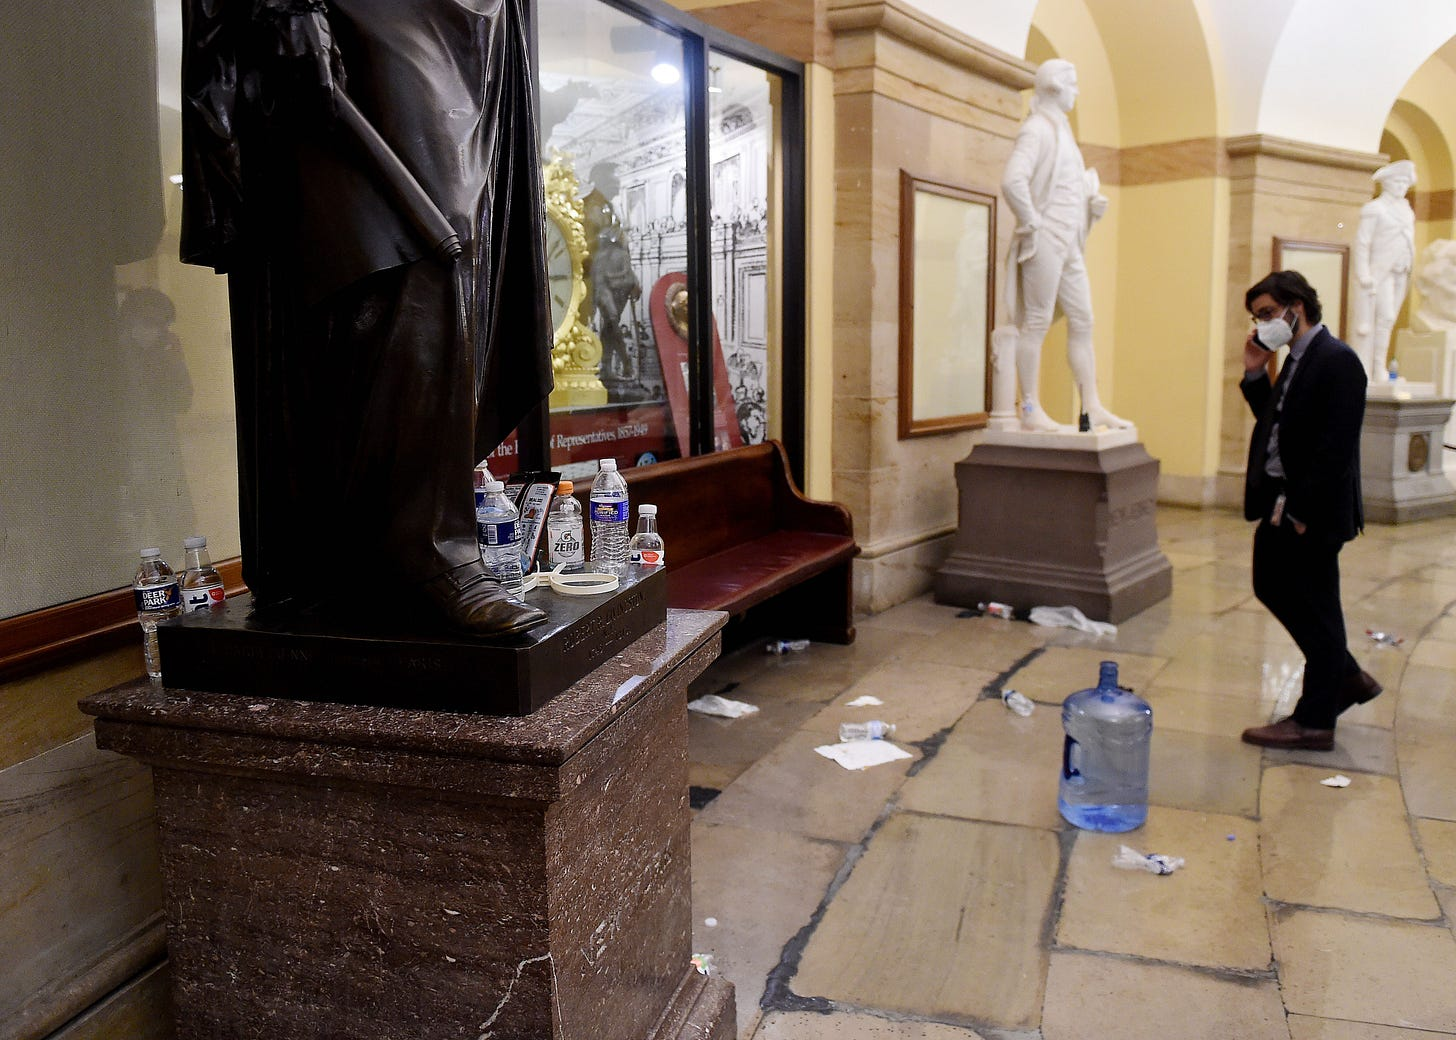 GLENN GREENWALD – The False and Exaggerated Claims Still Being Spread About the Capitol Riot